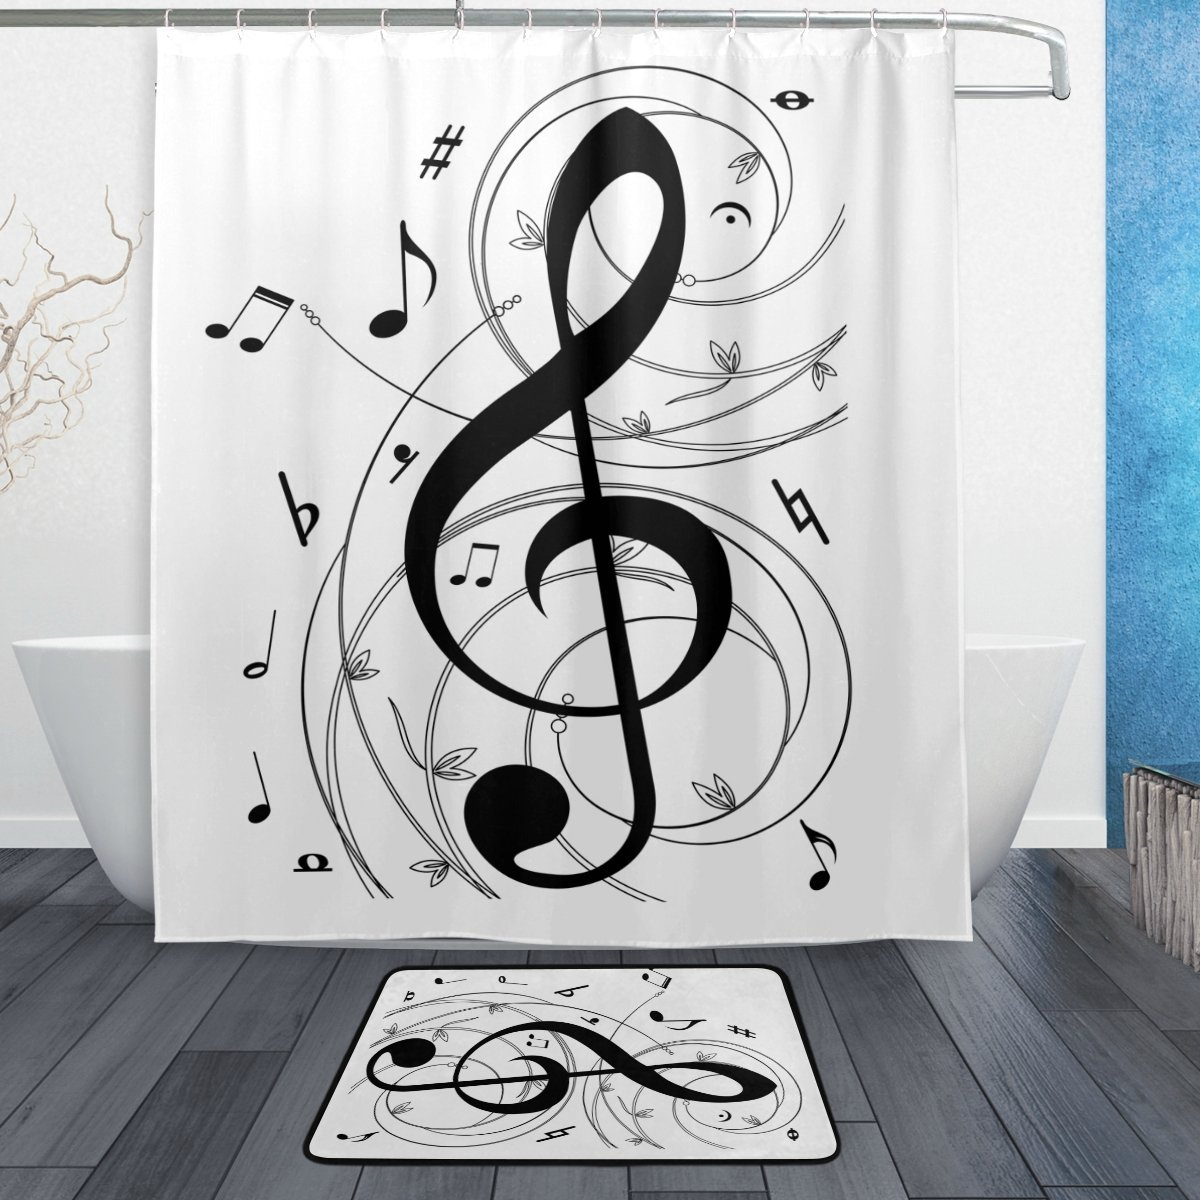 Music Shower Curtain and Mat Set, Musical Notes Waterproof Fabric Bathroom Curtain